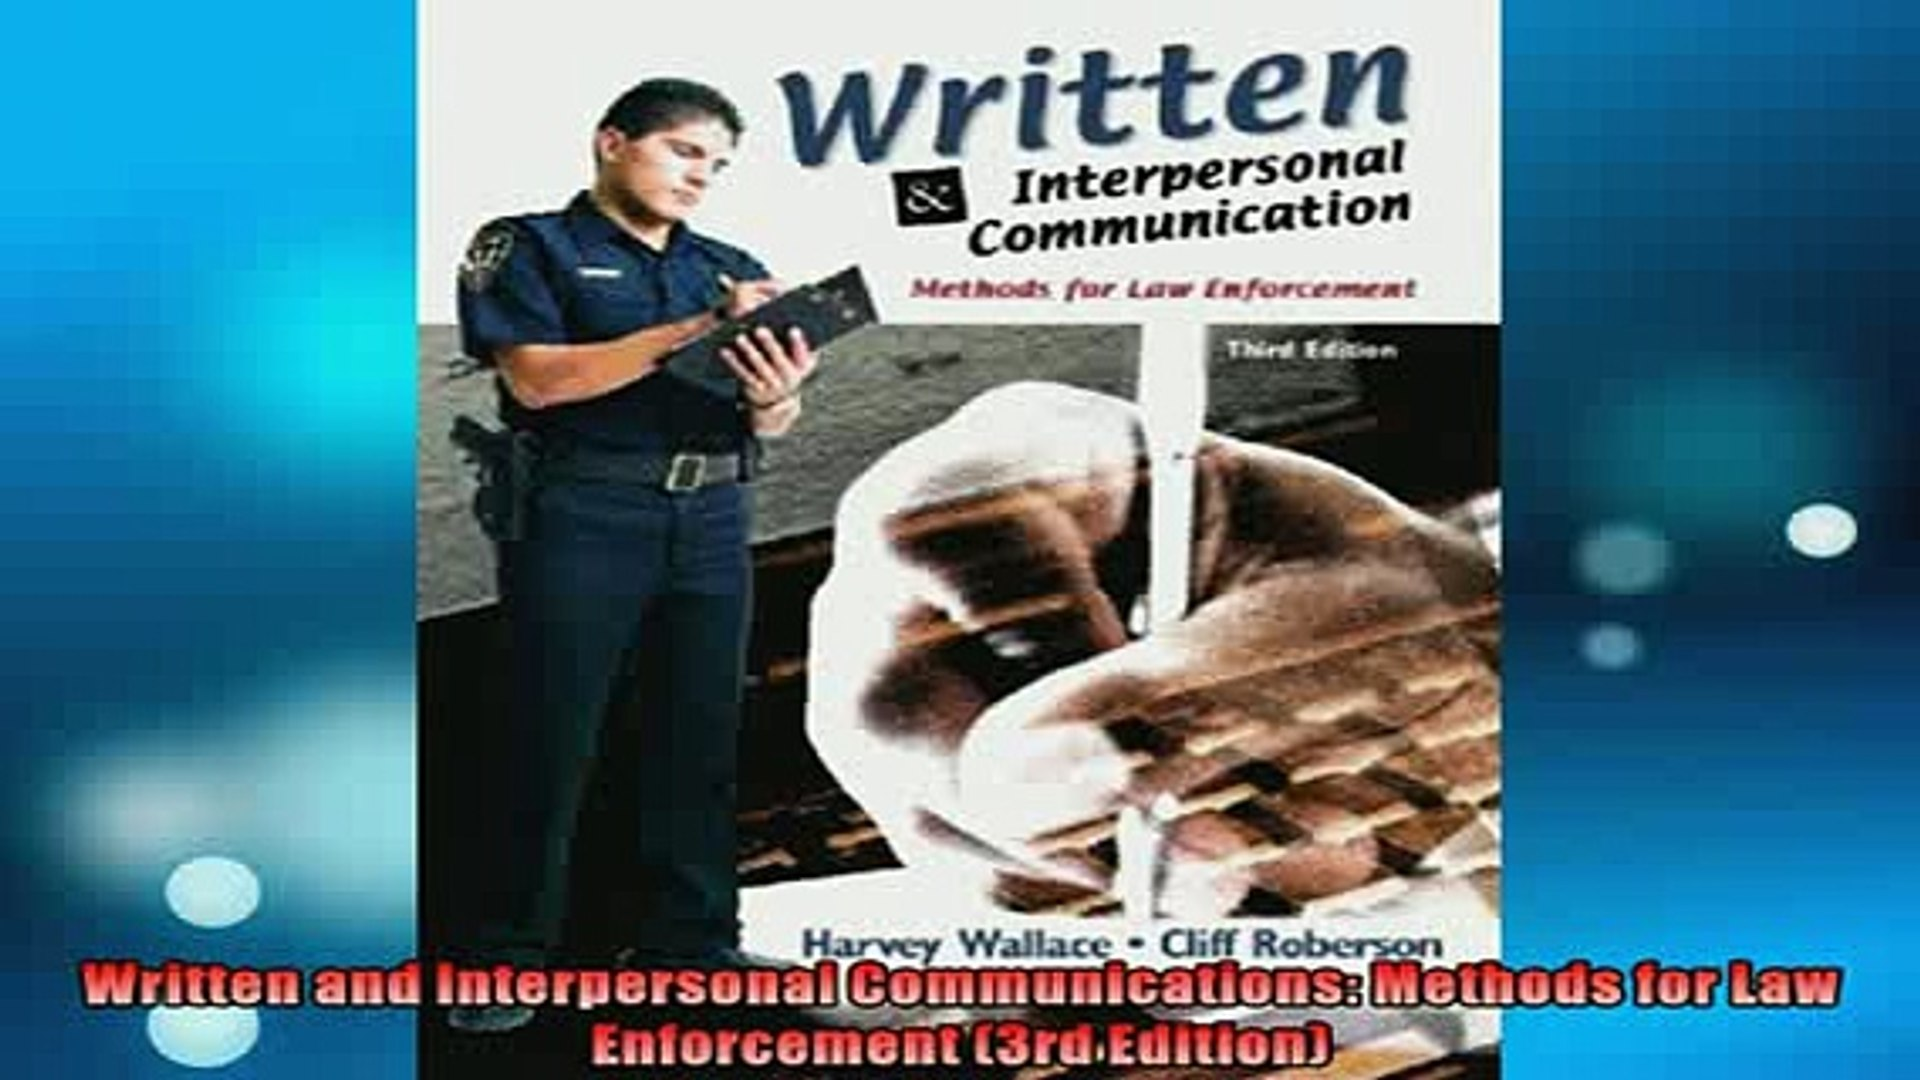 Written and Interpersonal Communications Methods for Law Enforcement 3rd Edition